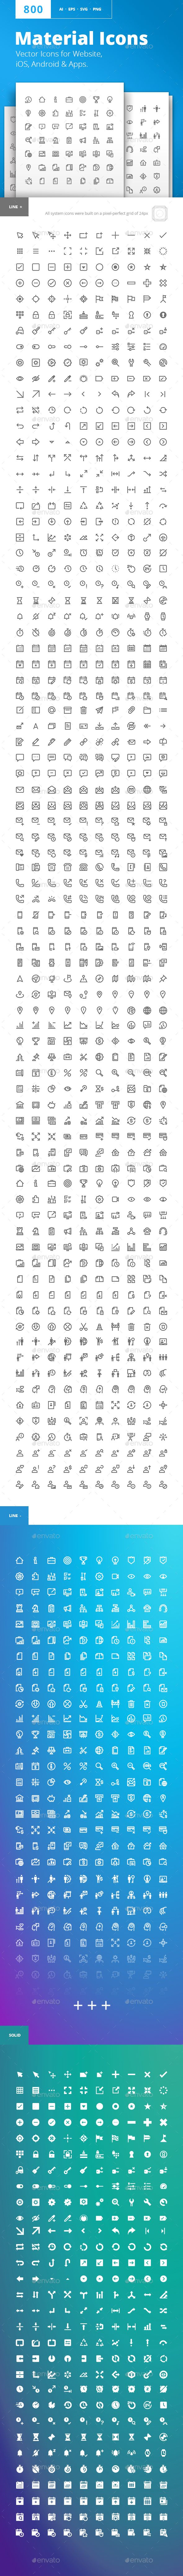 Material Design Icons Vector Icons For Website Ios Android